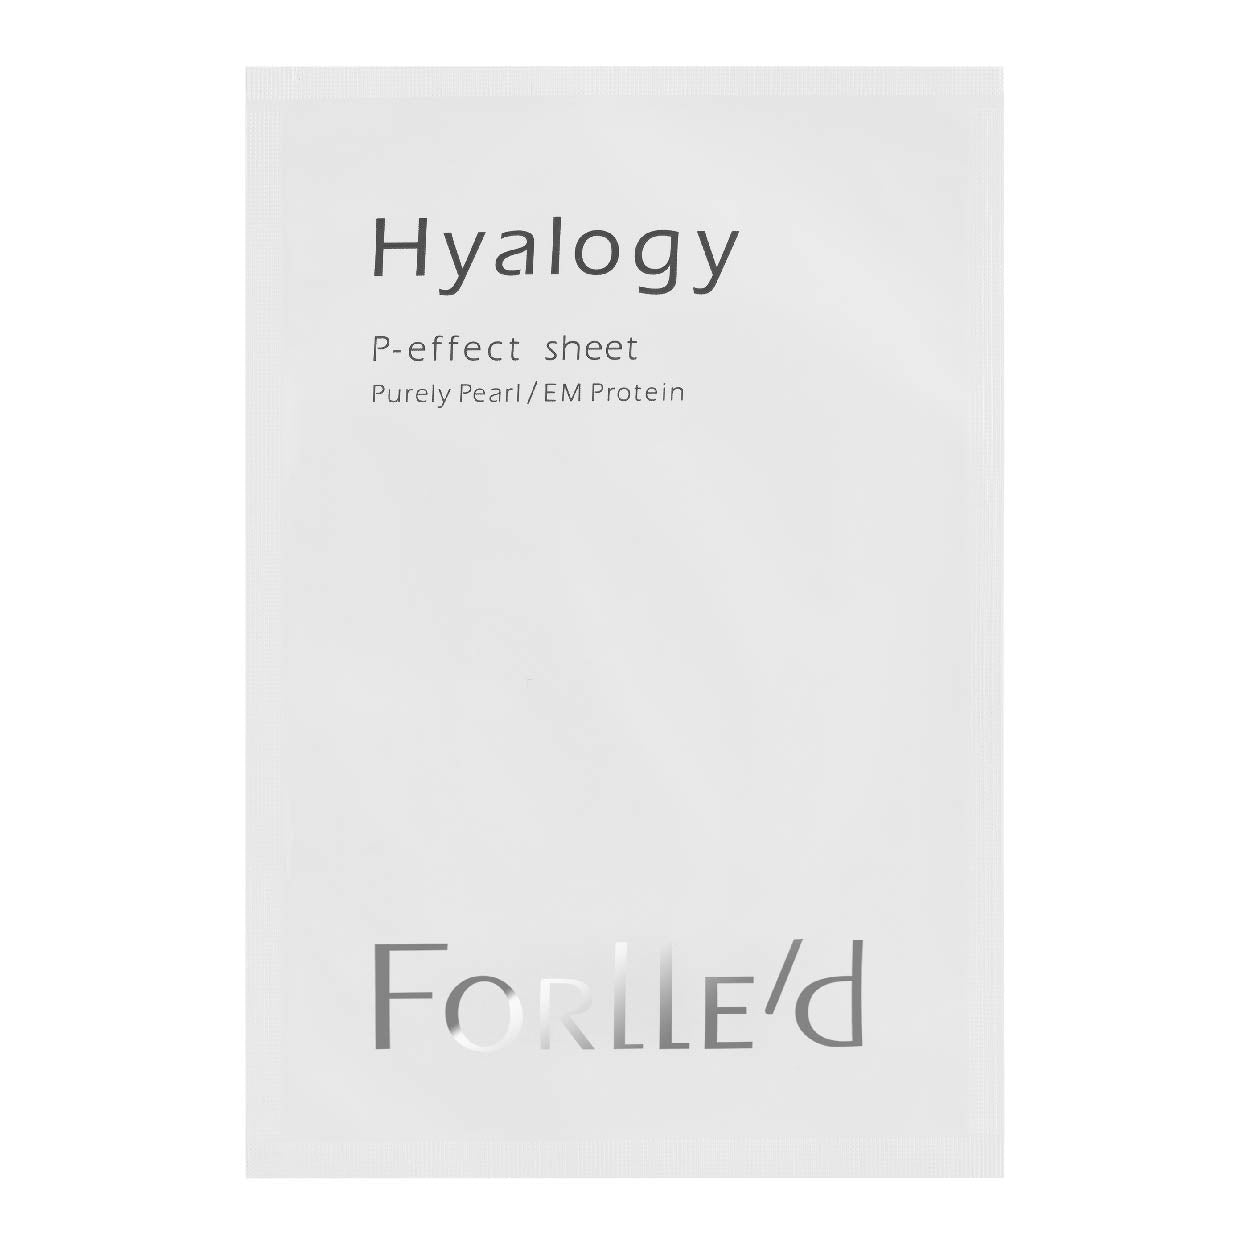 Forlle'd - Hyalogy P-effect Sheet (For Eyes)